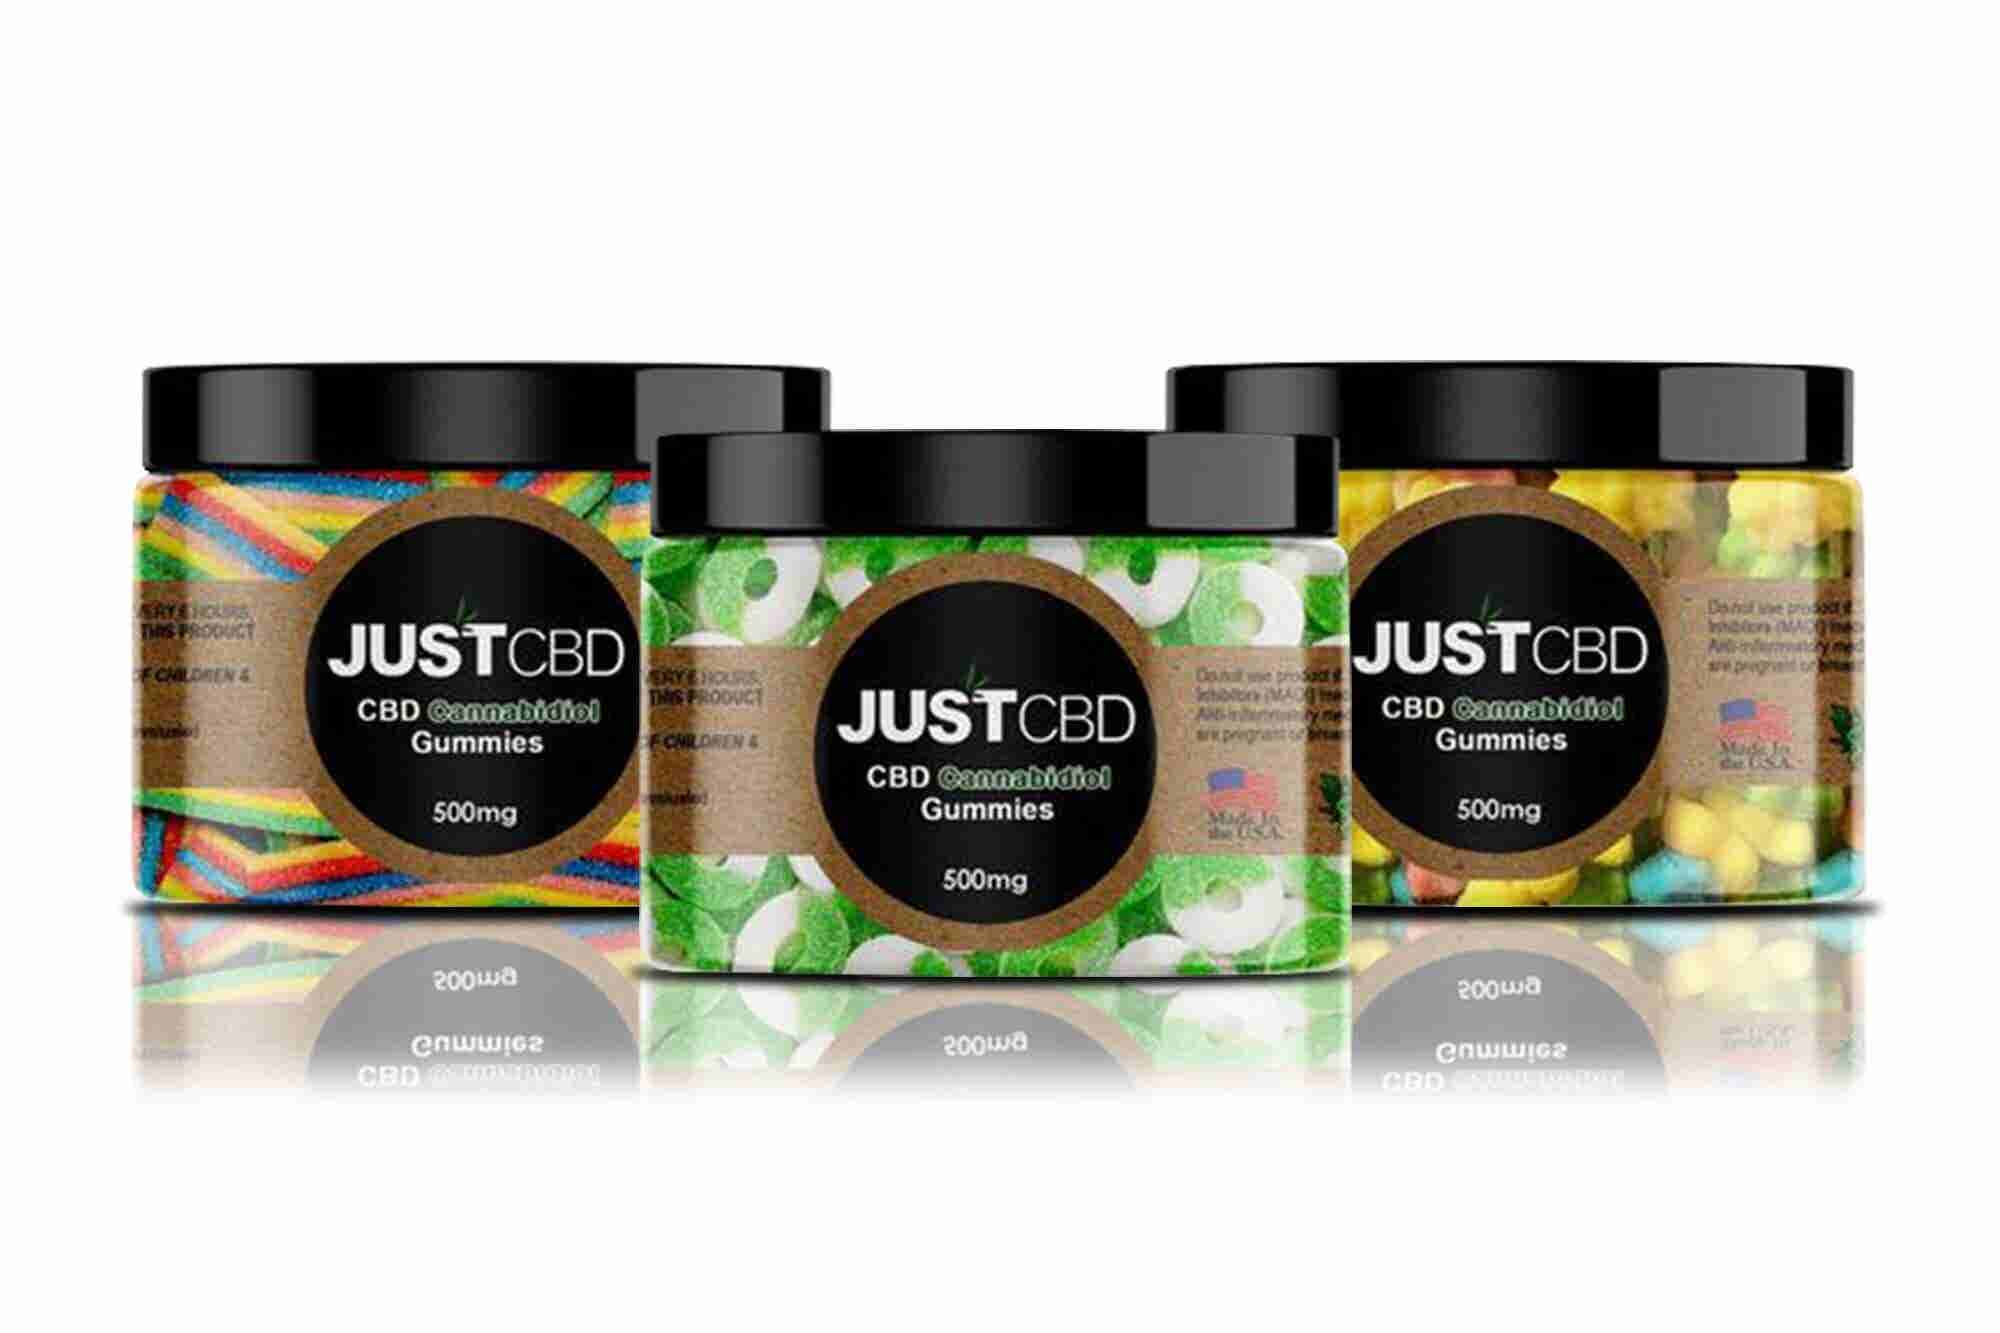 Get in on the CBD Craze With These Tasty Gummies